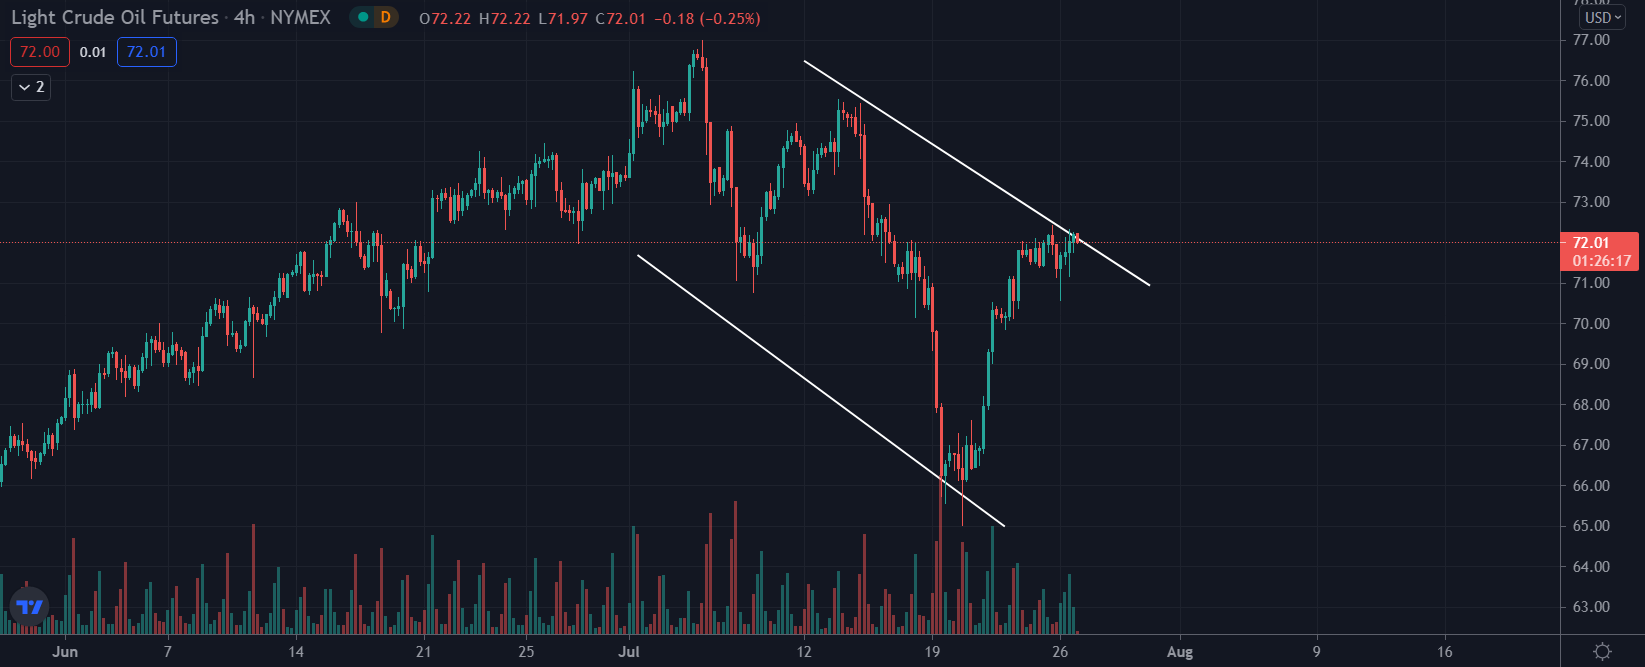 Crude Oil Futures downtrend July 2021